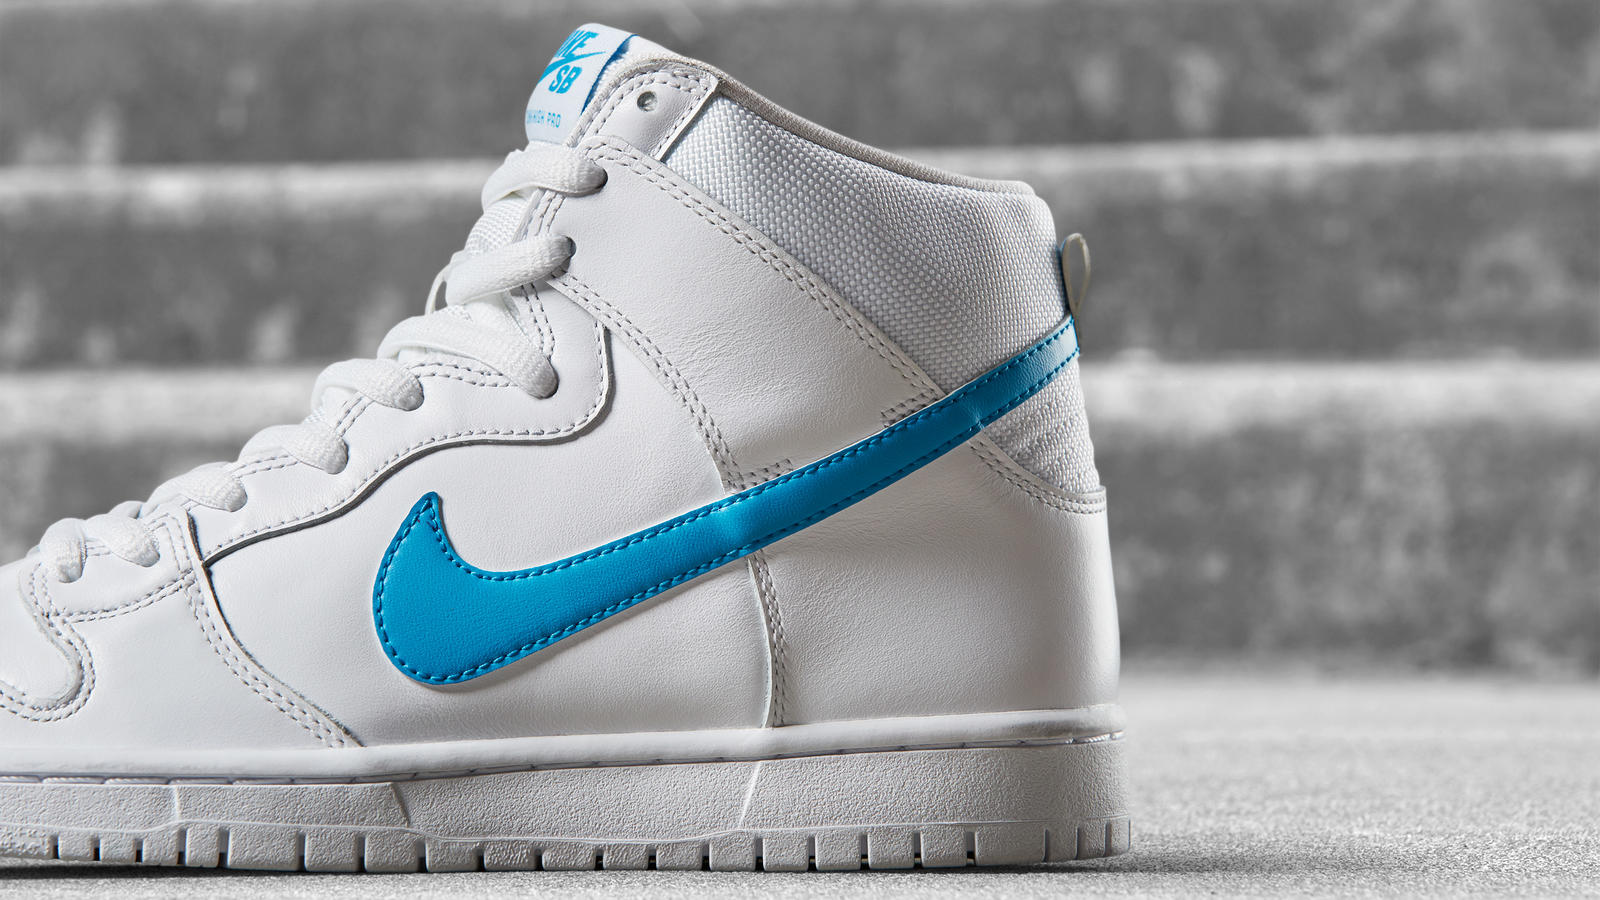 170320_FOOTWEAR_SB_WHT_DUNK_0162_hd